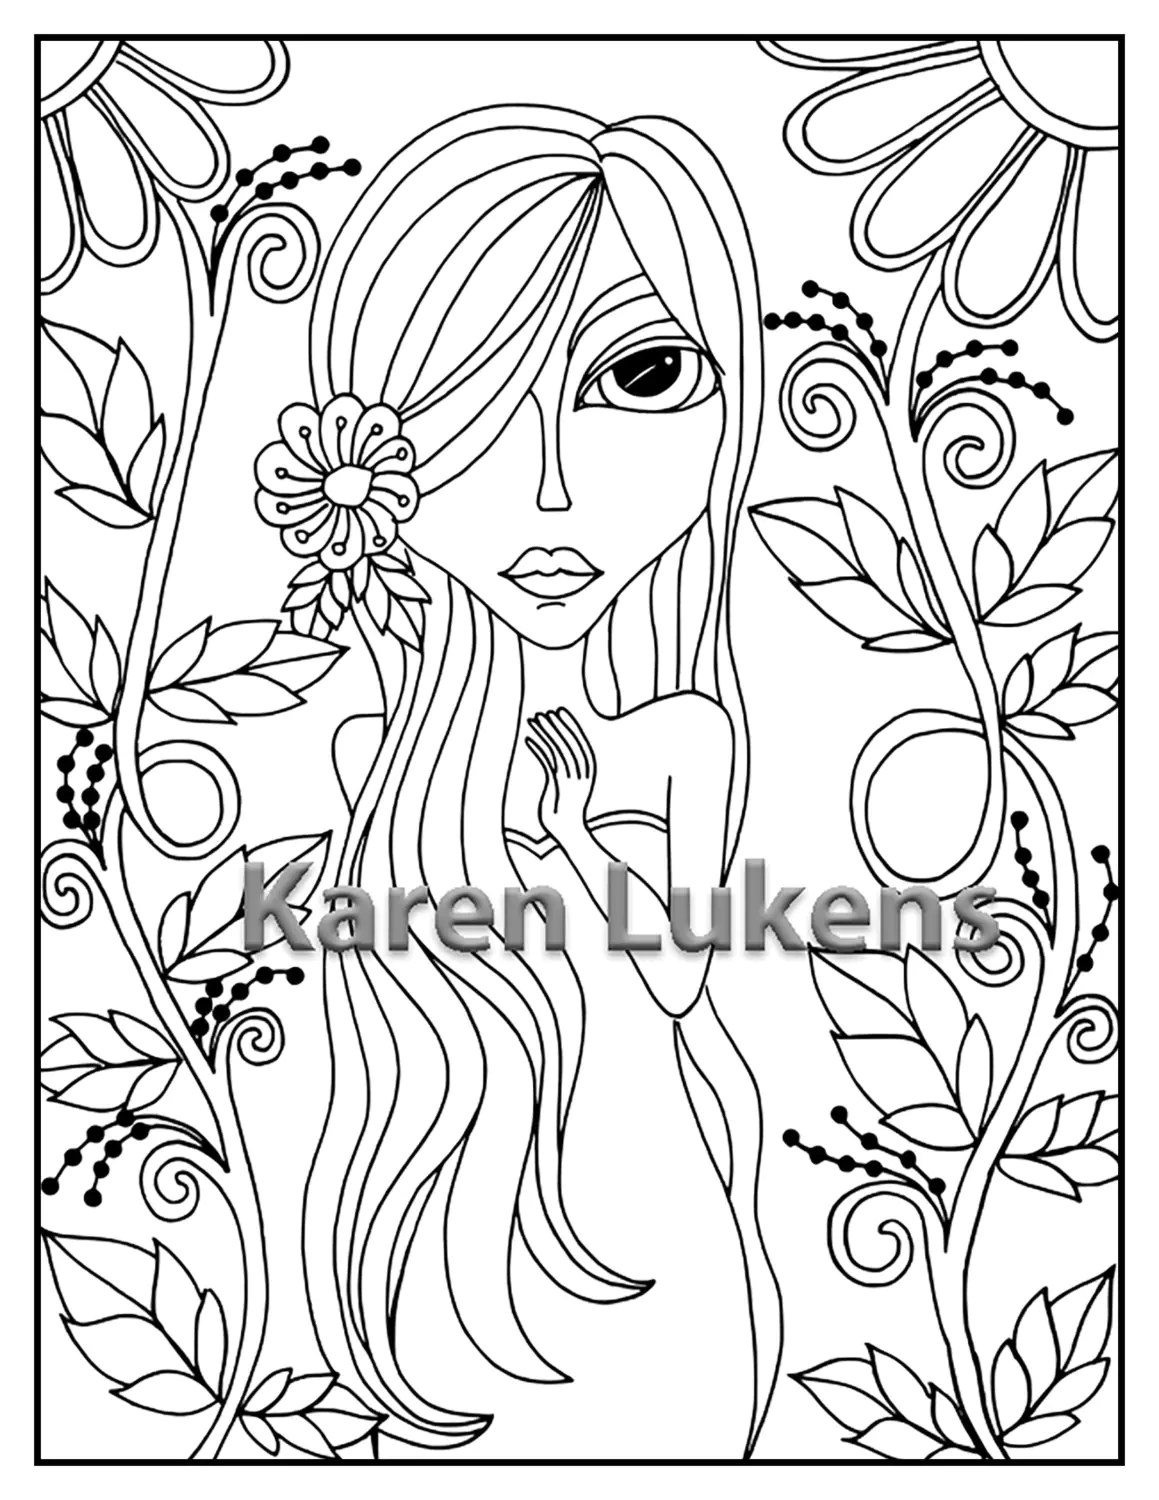 Lolita 1 Adult Coloring Book Page Printable Instant